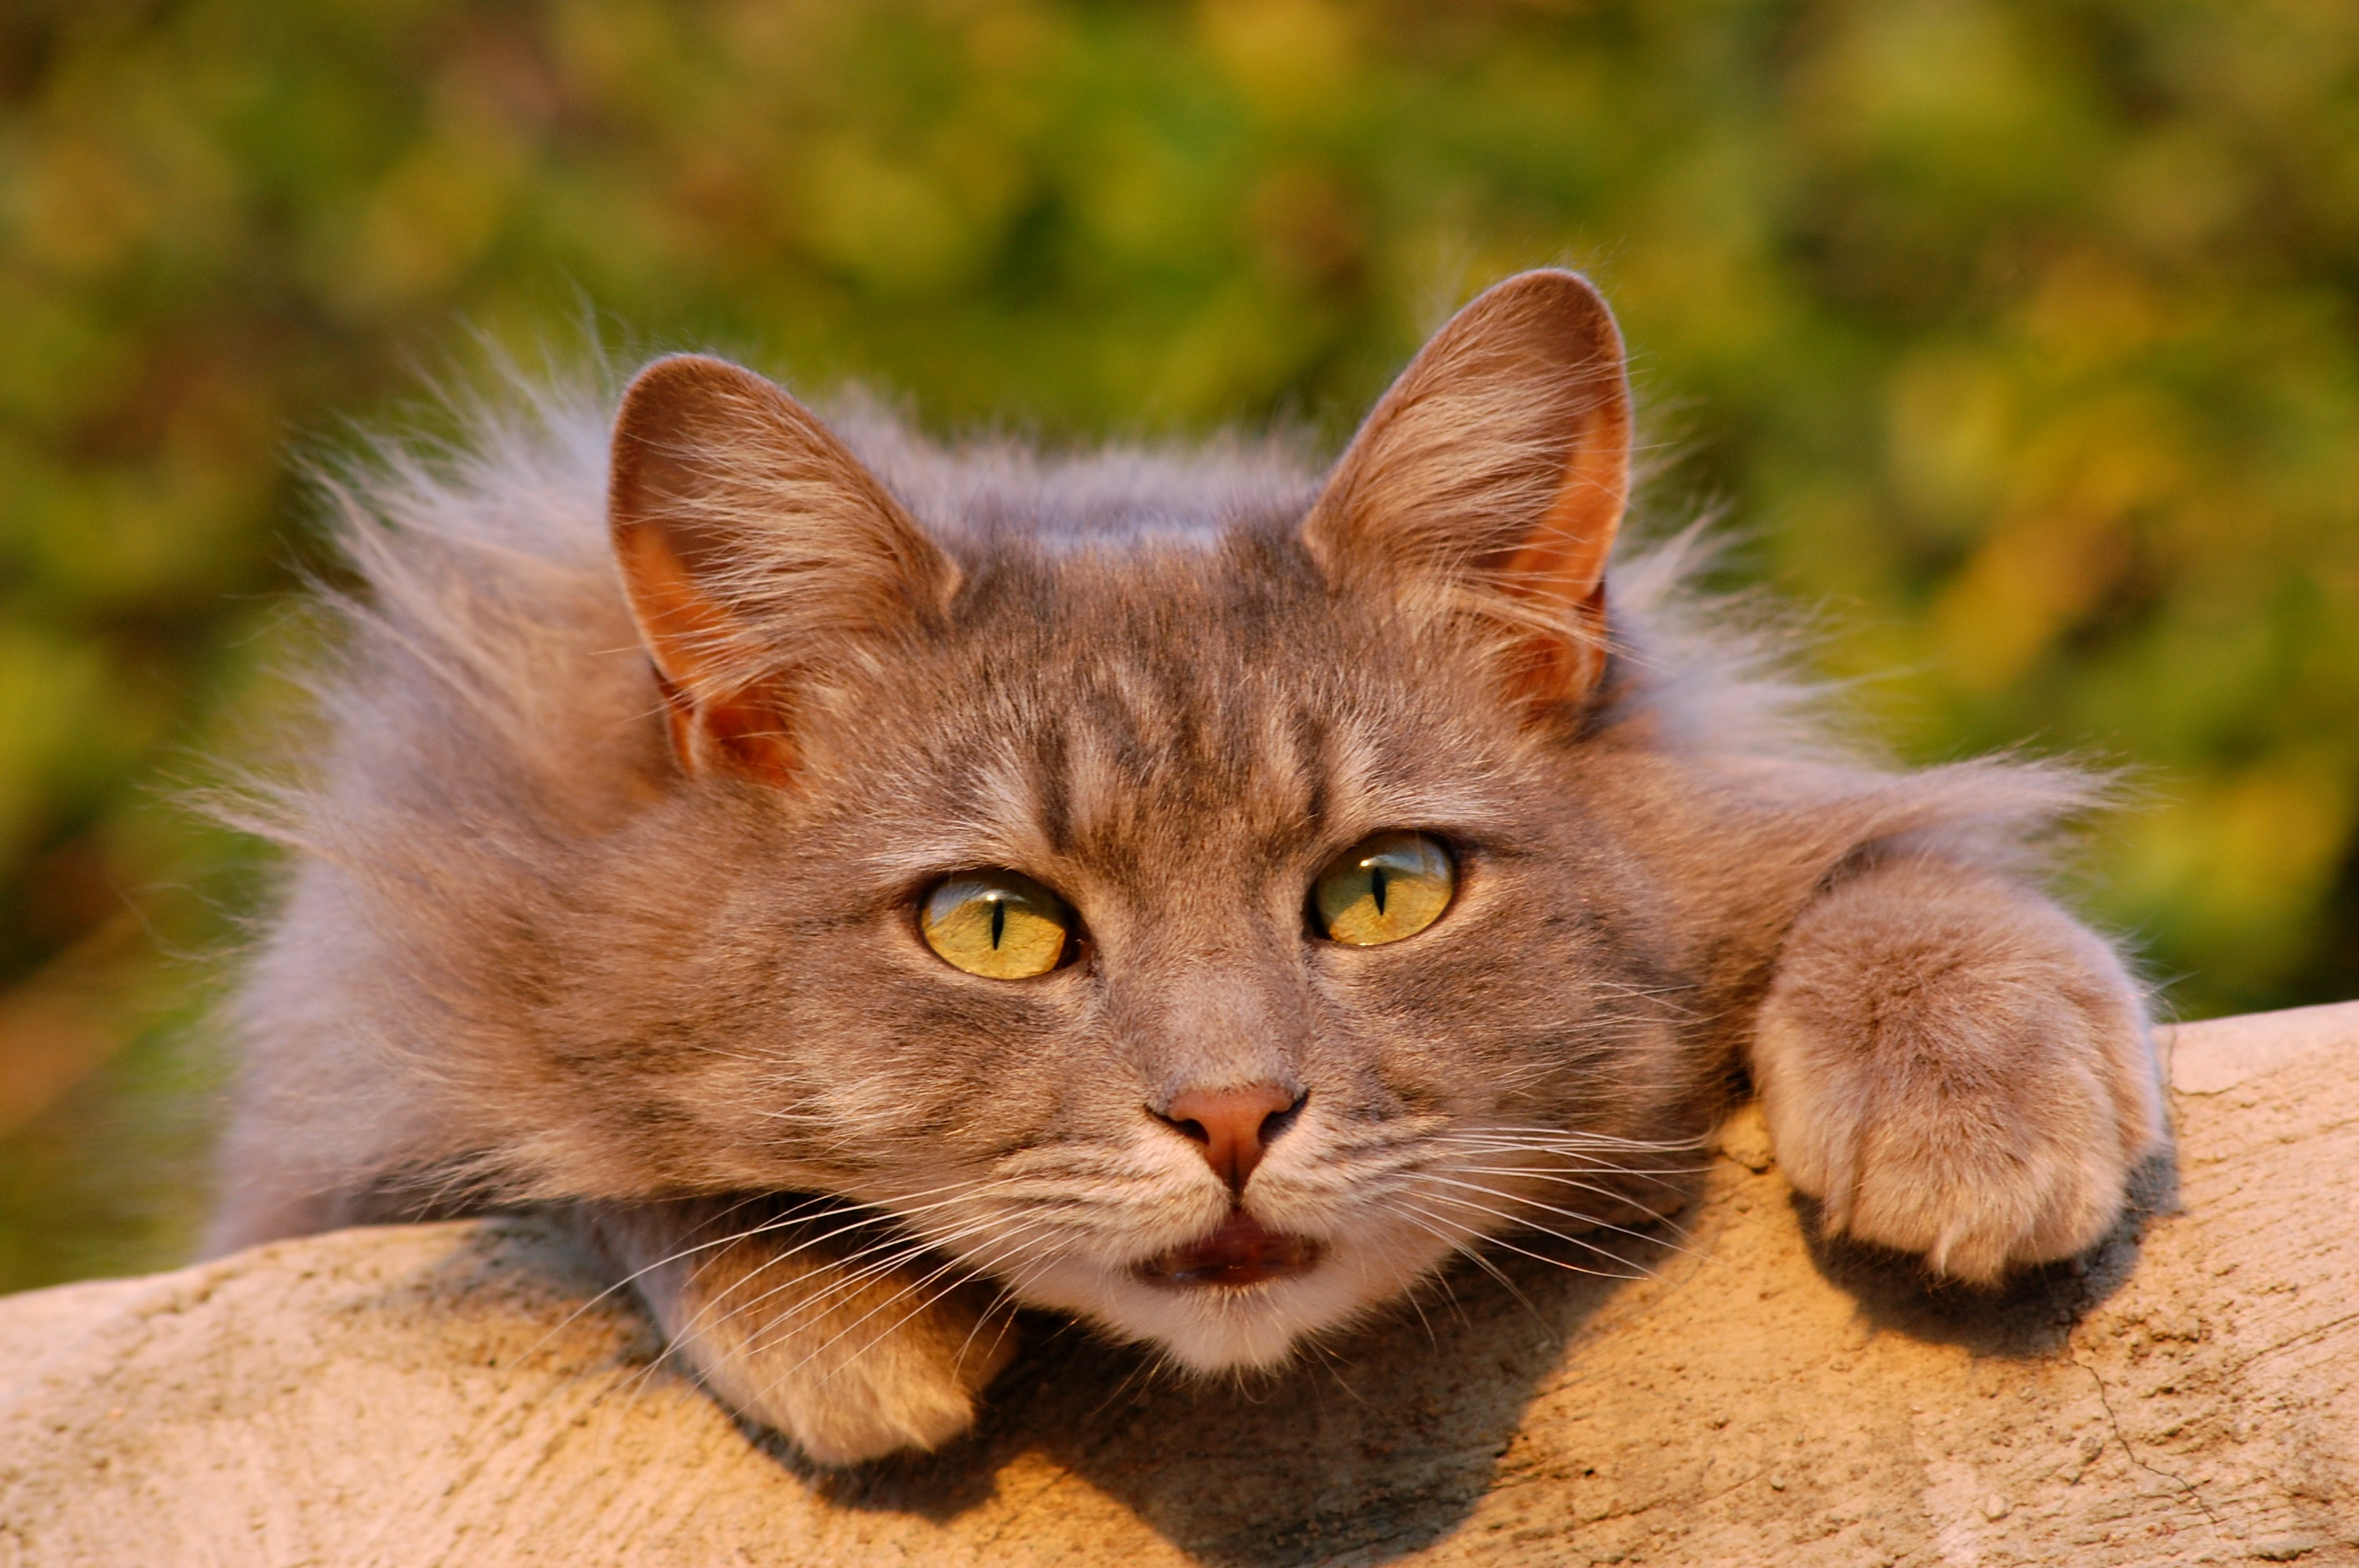 Cute Kitty Wallpapers Free Free Stock Photo Of Animal Cat Cc0